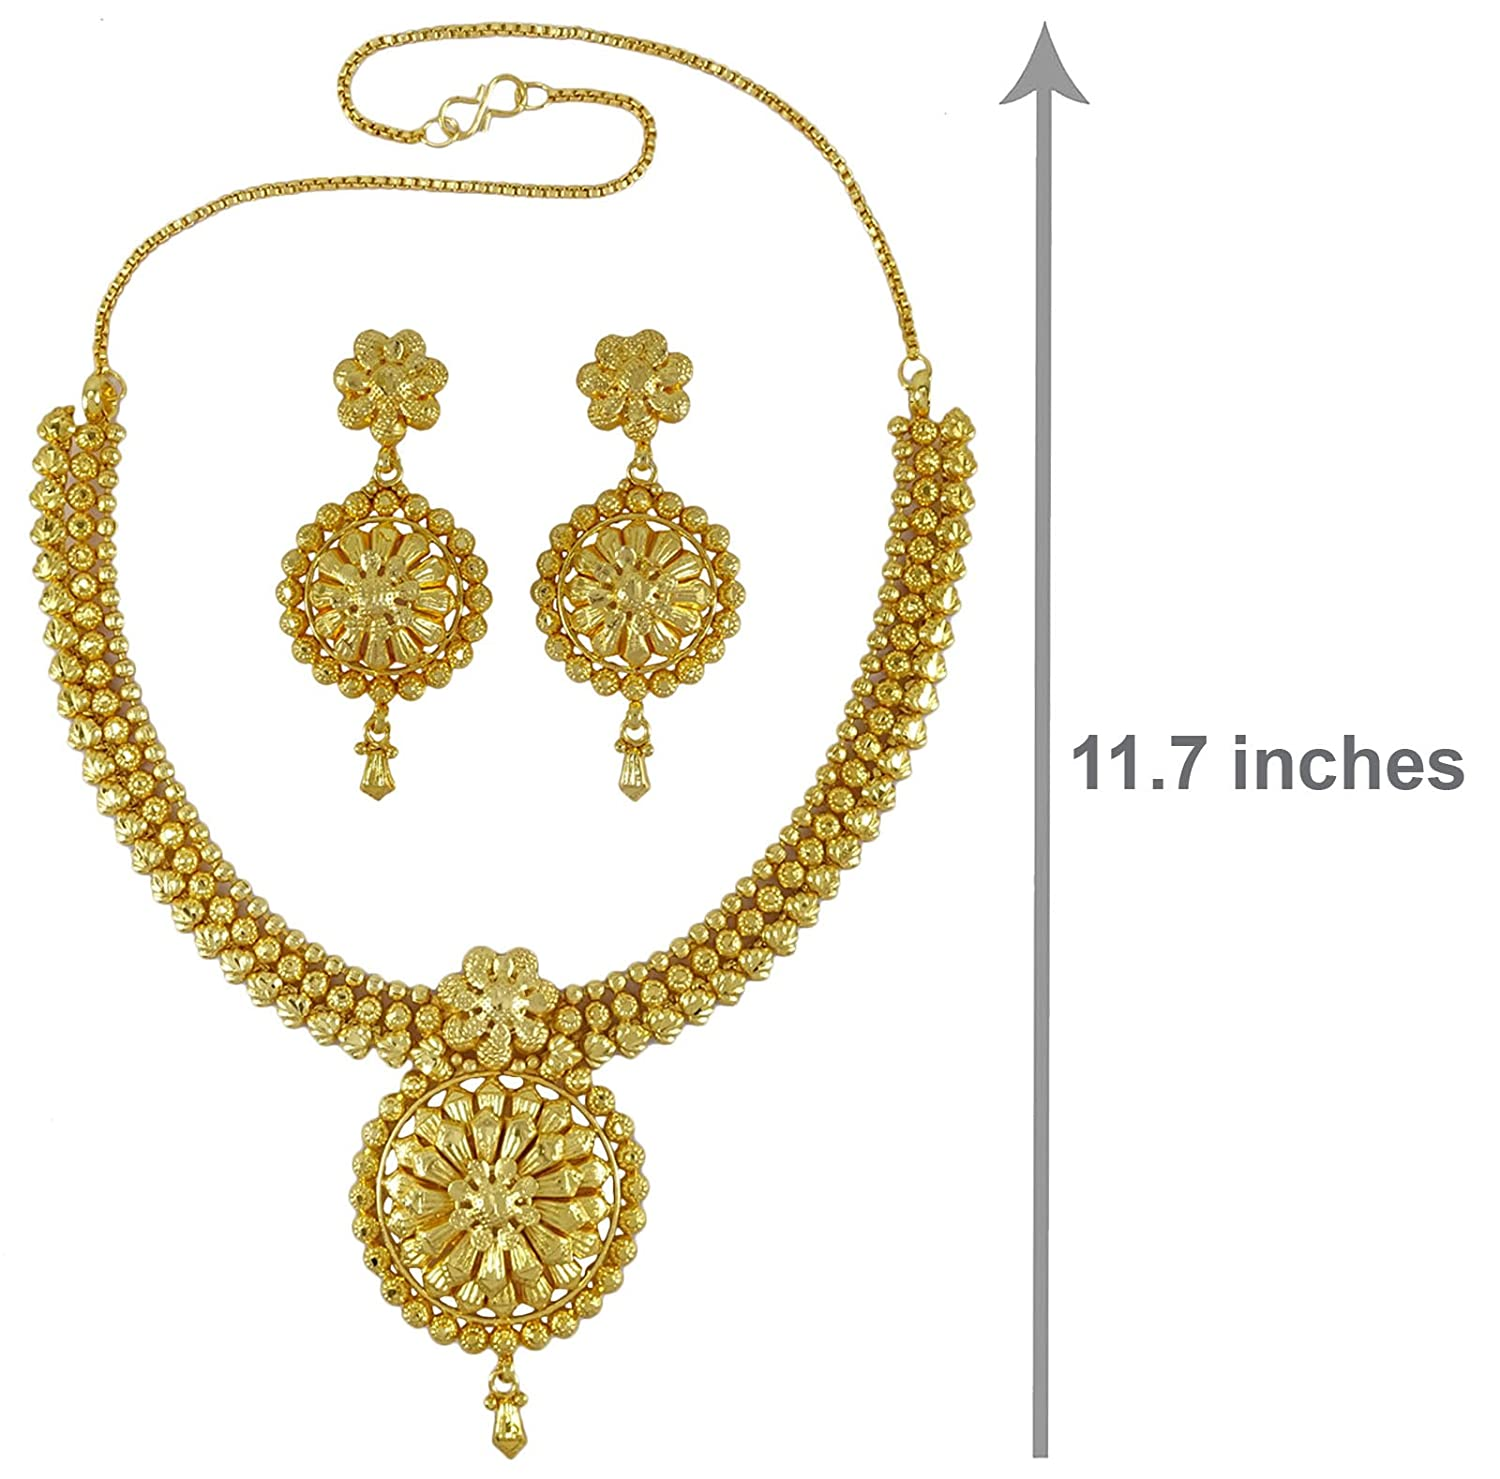 26c4b837a8f6c Banithani Ethnic Indian Traditional 18k Gold Plated 2 PC Necklace ...